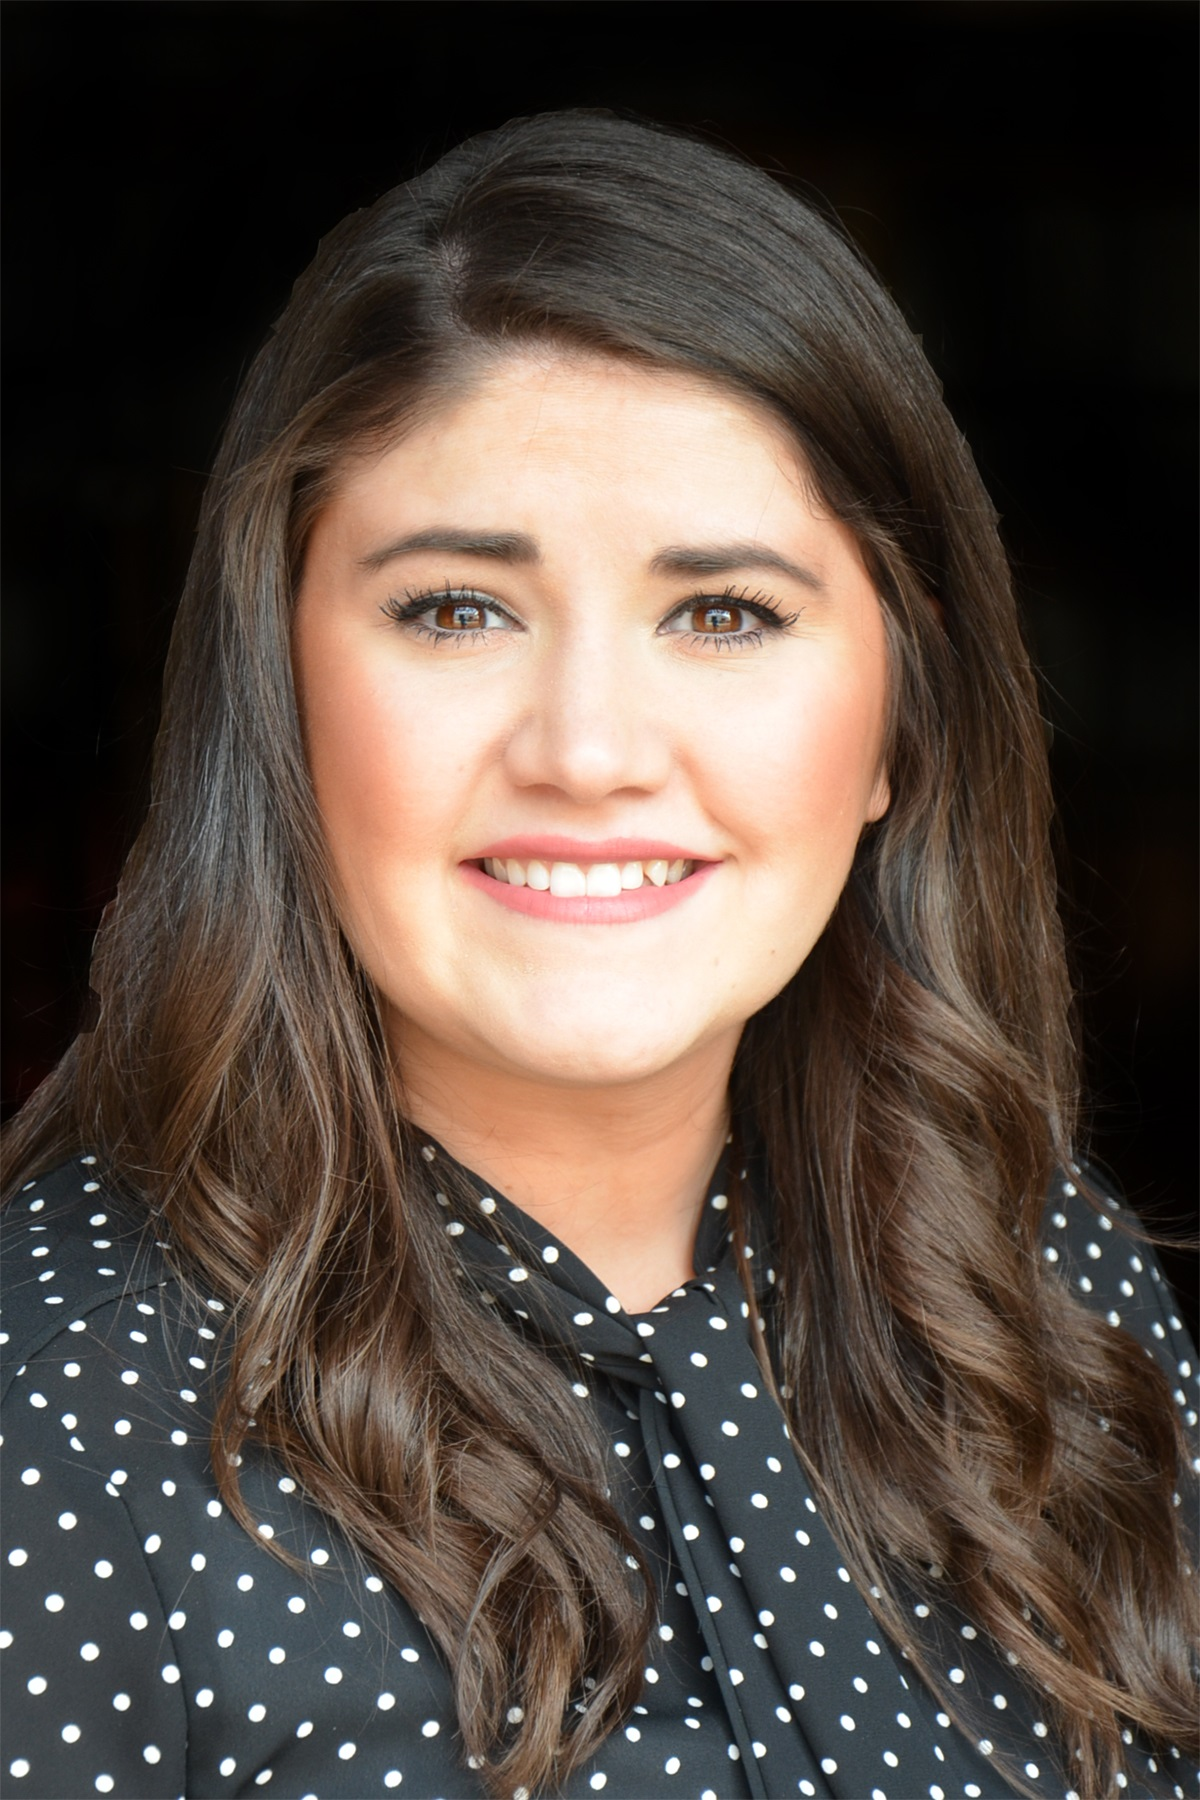 Headshot of Courtney Miller